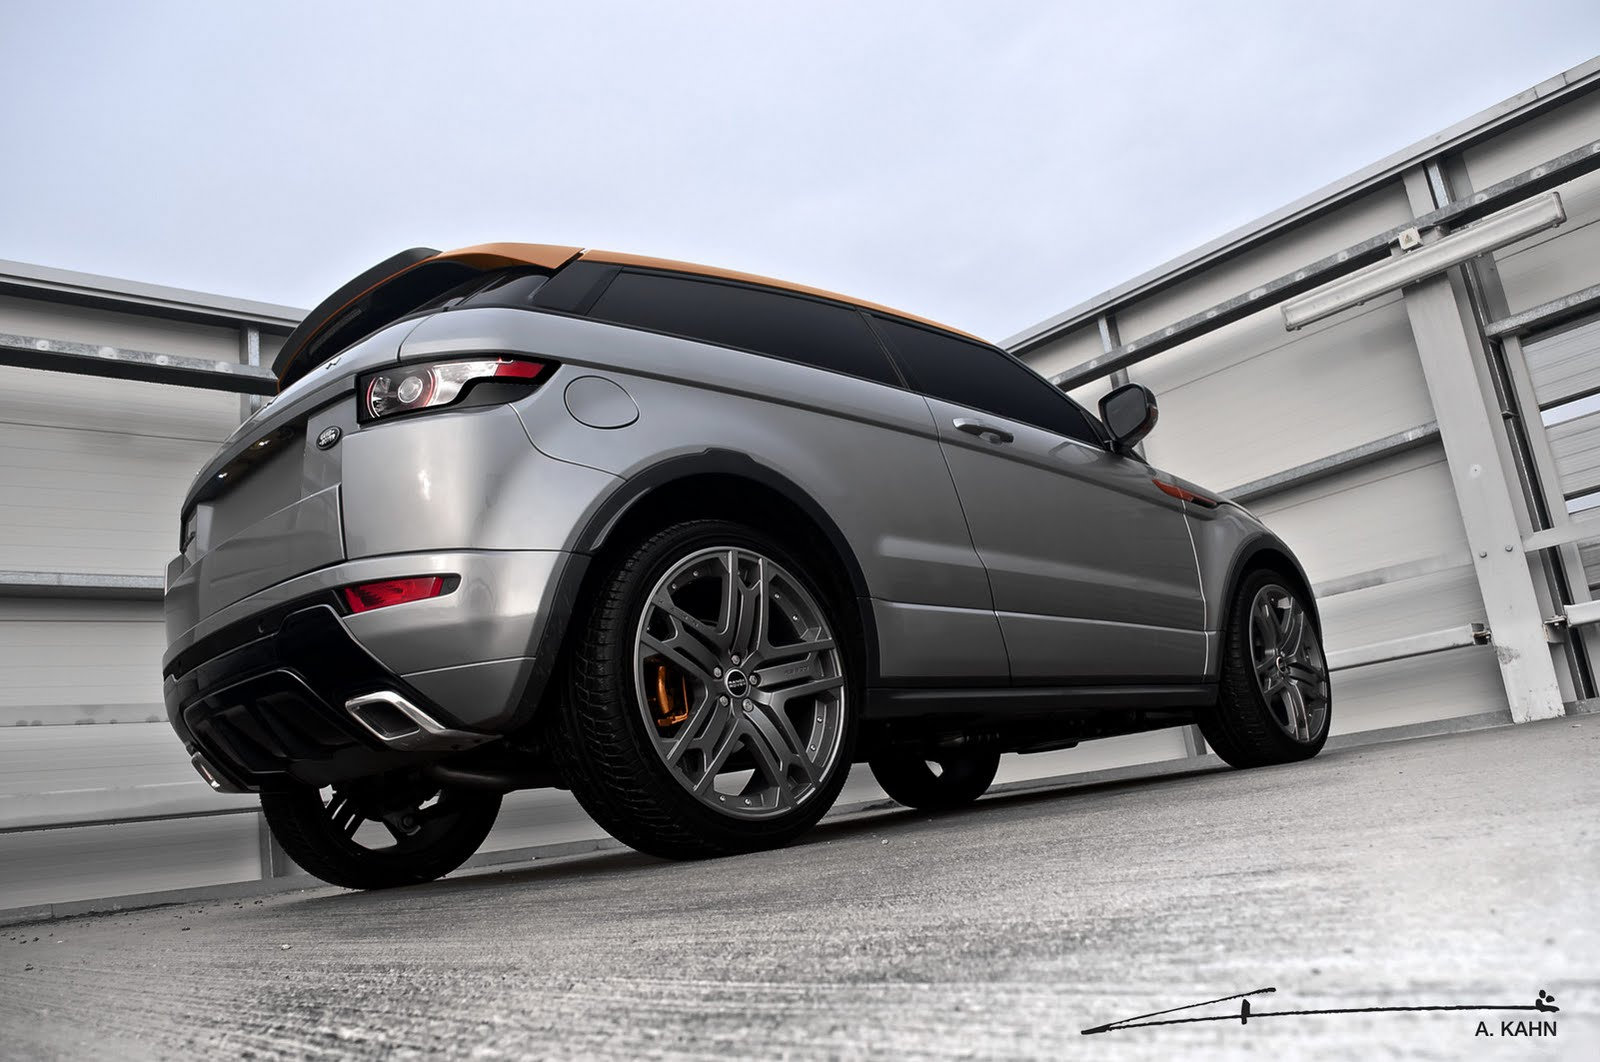 2012 Range Rover Evoque Project Kahn 2 2012 Range Rover Evoque Project Kahn   Energy Efficient with Powerful Street Nav System